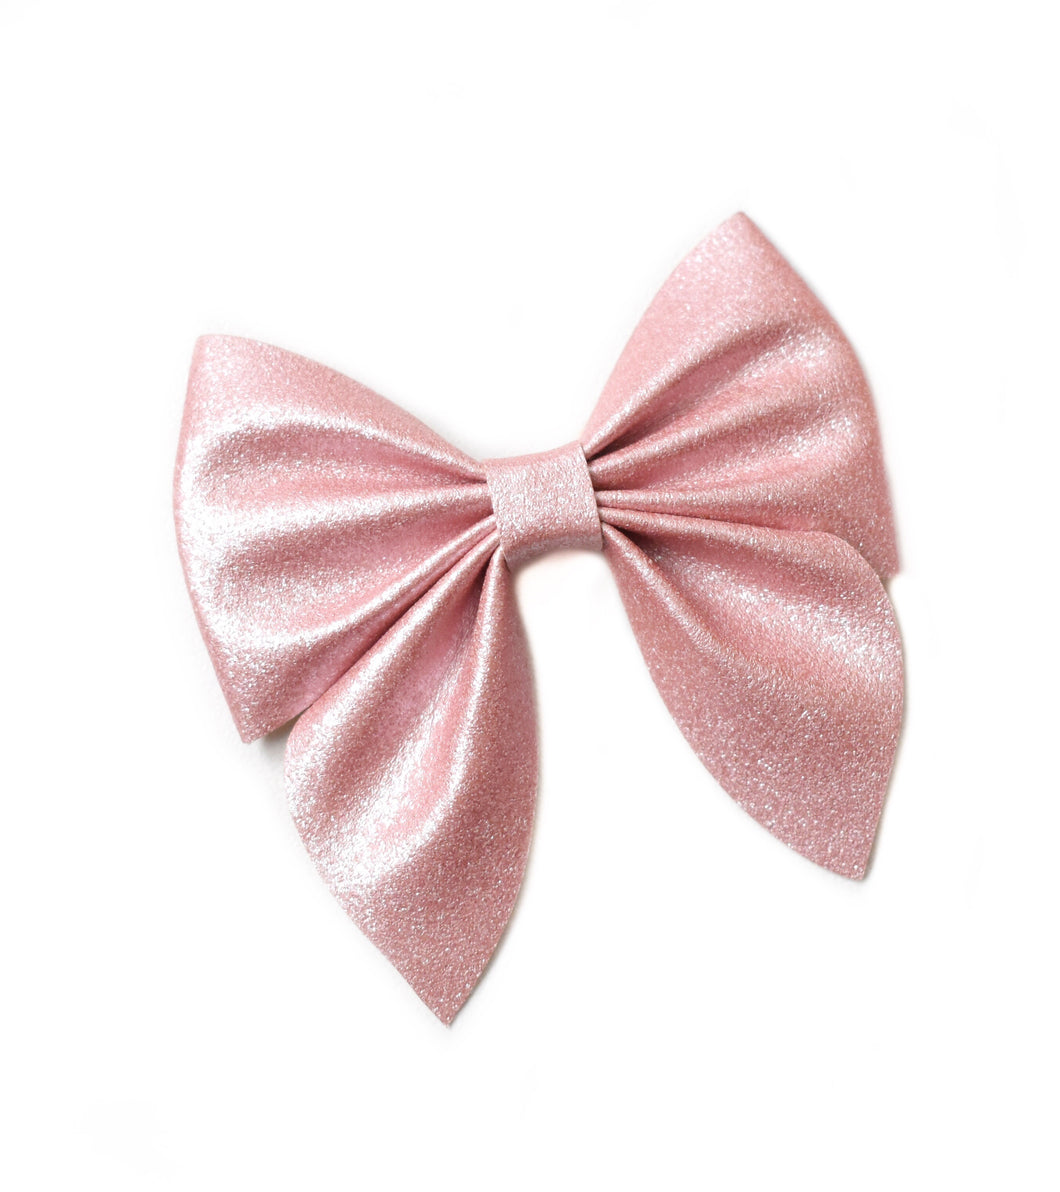 Sailor- Pearl Pink glitter bow, leatherette bow, fringe clip, butterfly bow, personalised bow, rainbow bow, dolly hair bow, floral bow, shimmer bow, pretty bow , Bow Handmade Hairbow, handmade hair accessories, Sweet Adalyn Sweet Adalyn